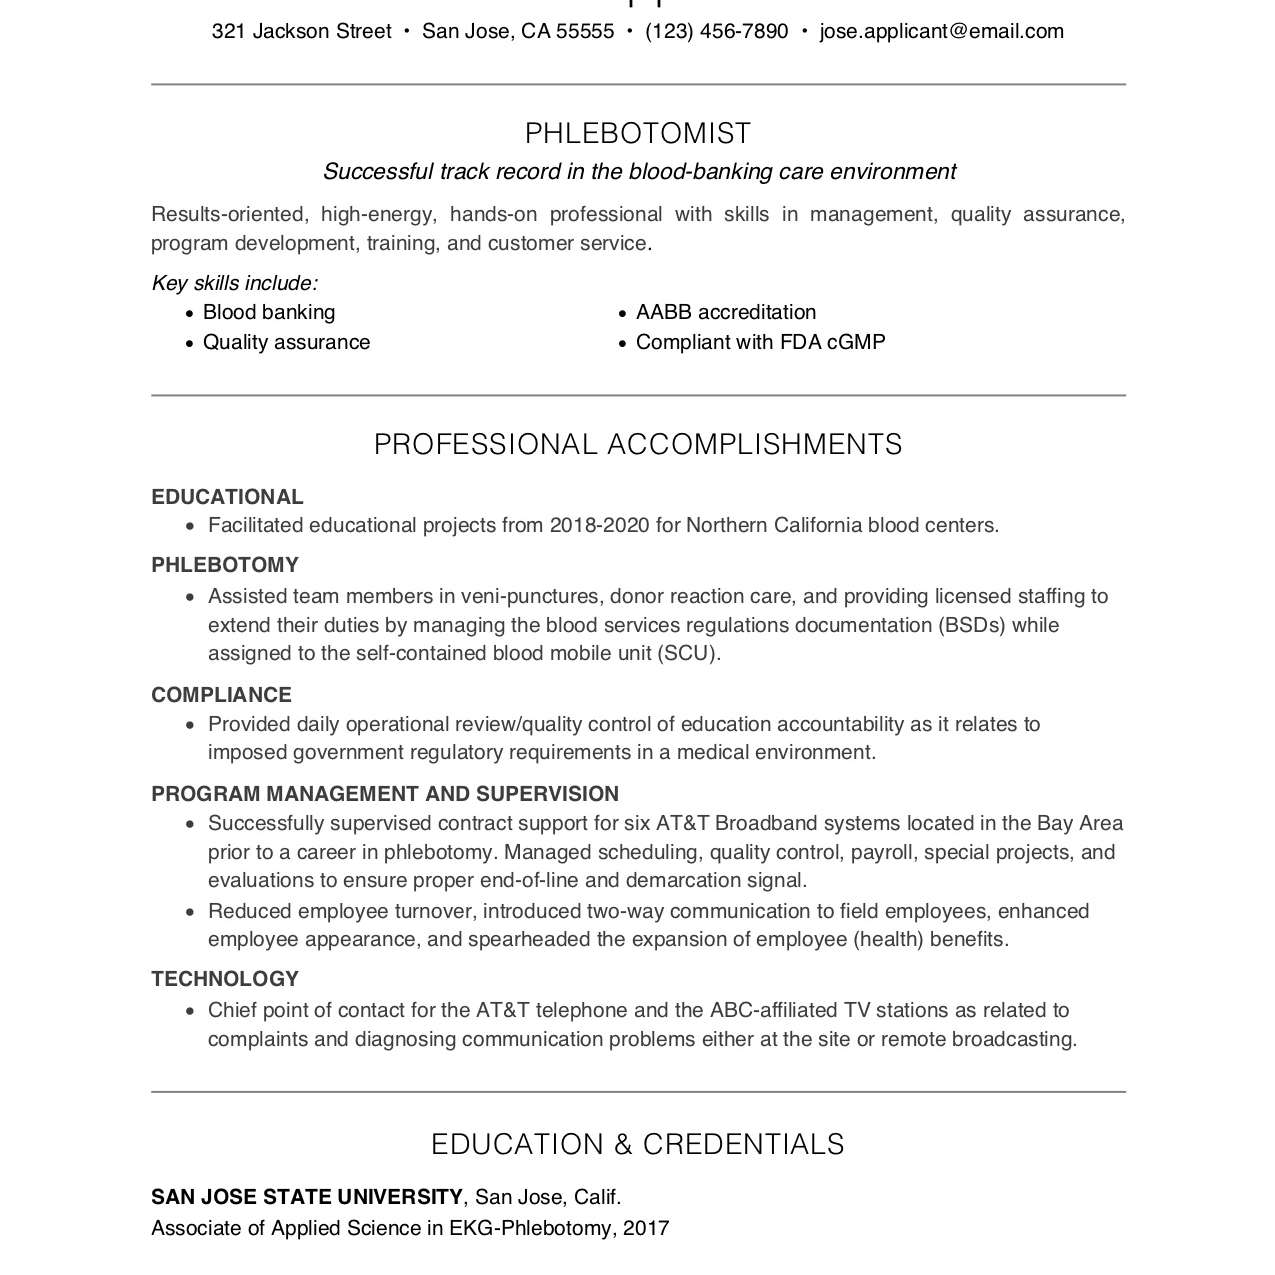 functional resumes are they combination resume definition randstad submit advertise Resume Combination Resume Definition